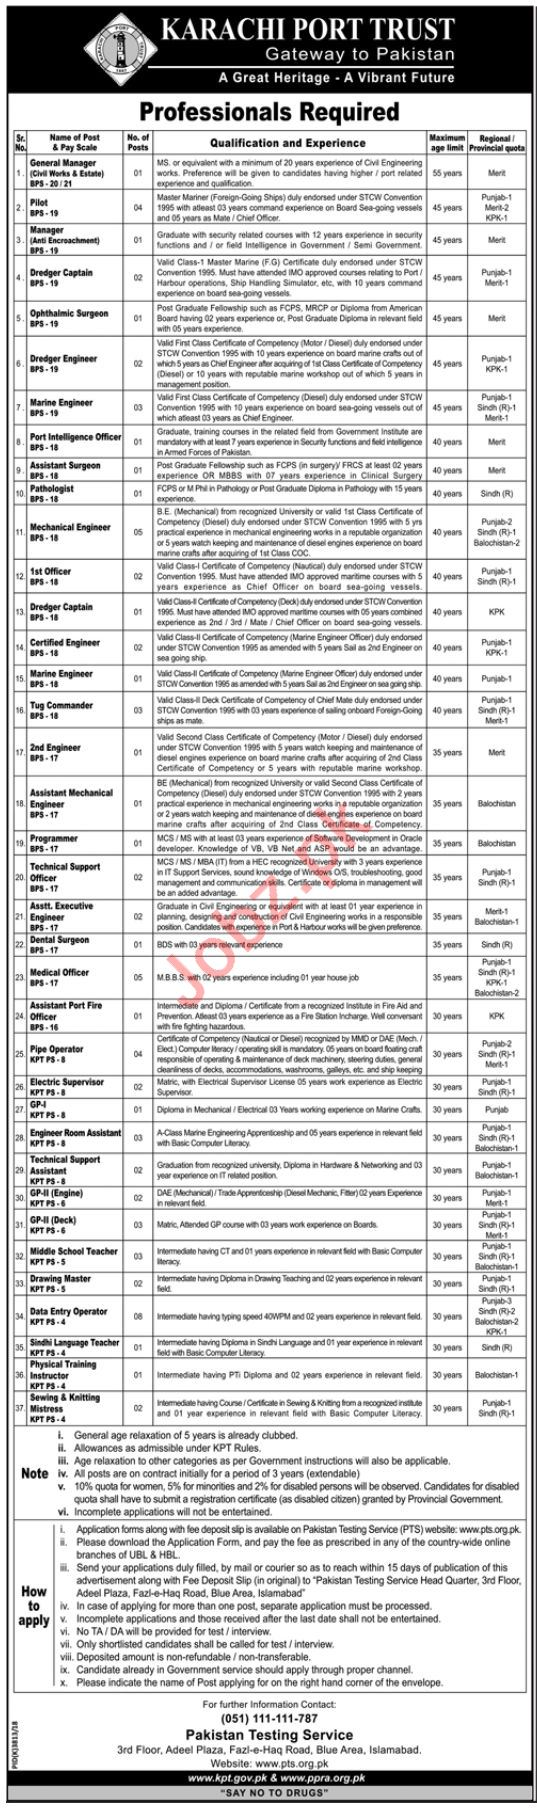 Karachi Port Trust Management Jobs 2019